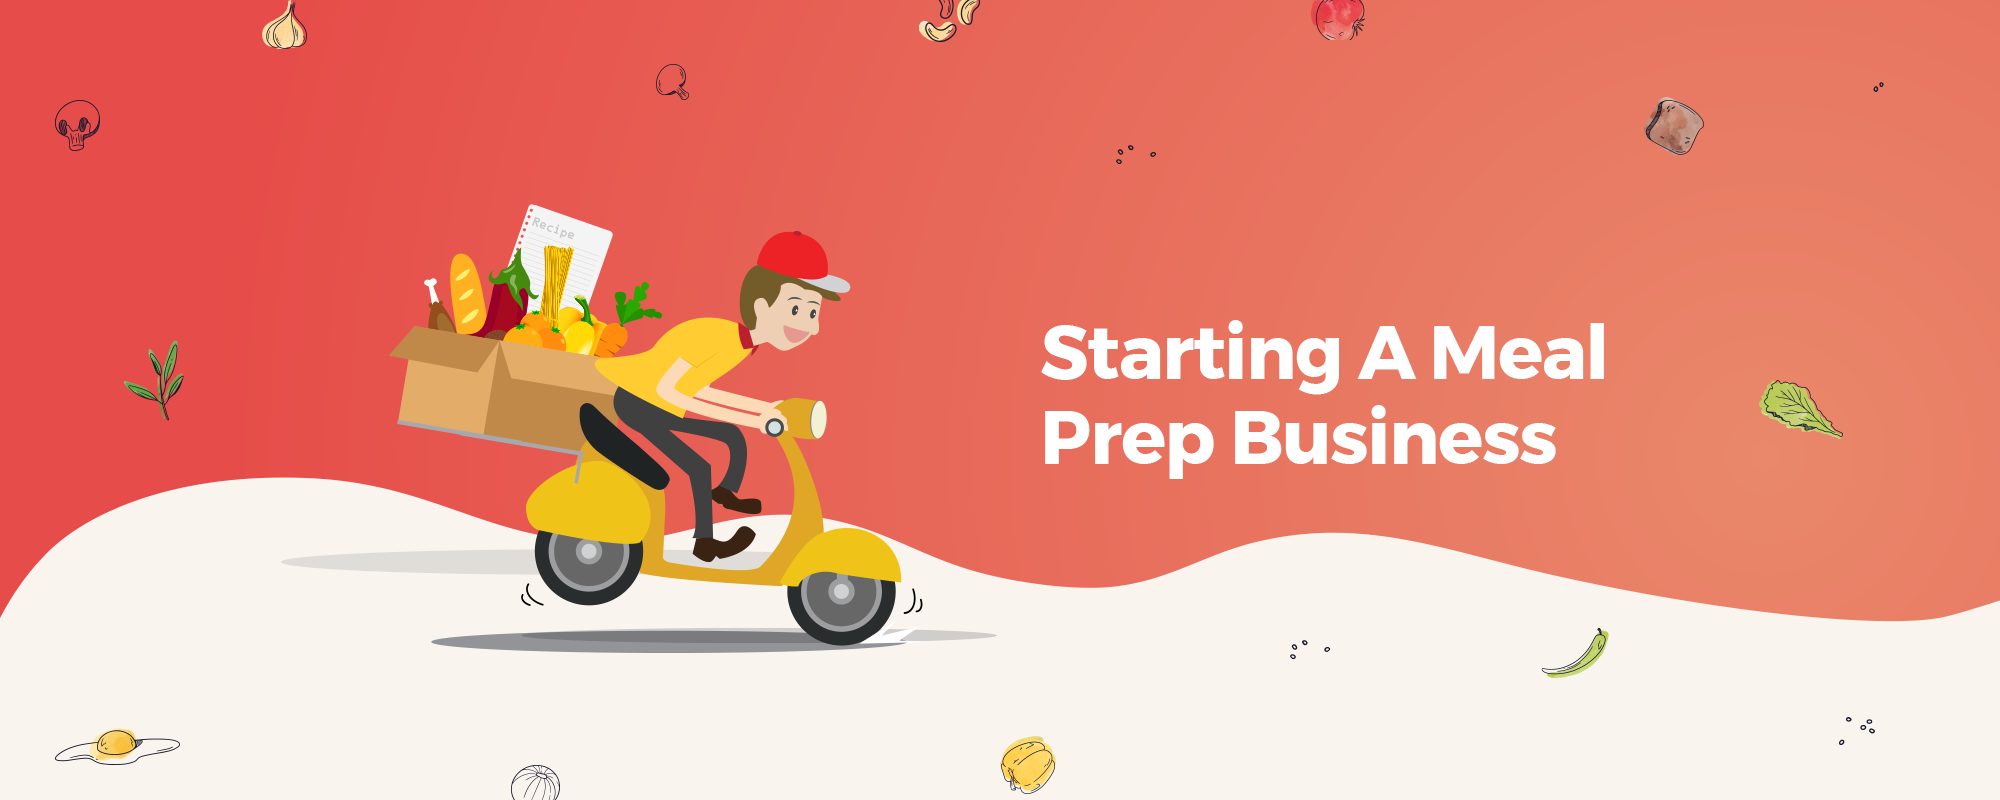 Things To Consider When Starting A Meal Prep Business